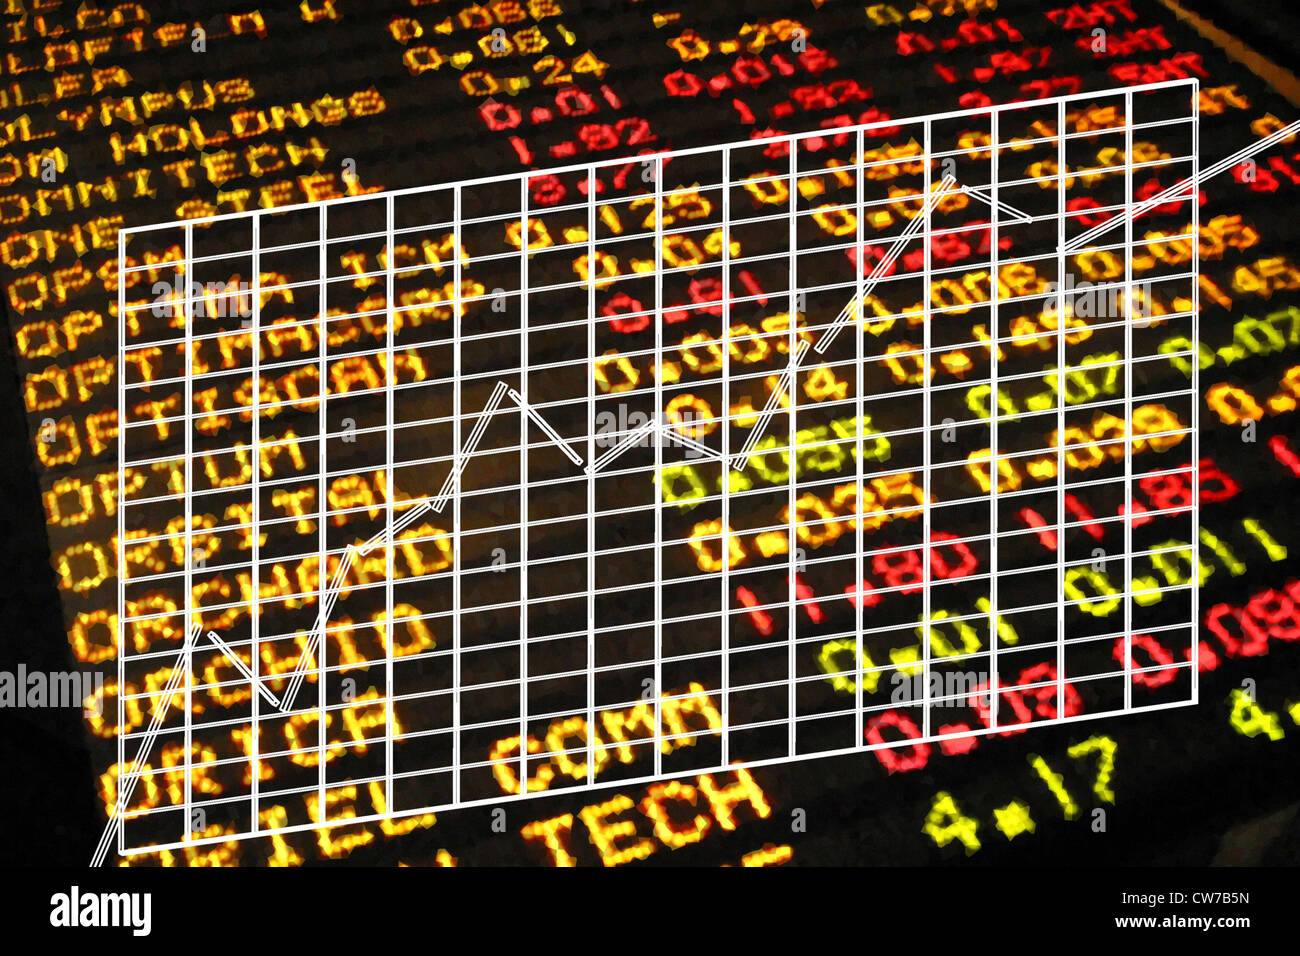 chart at stock market - Stock Image